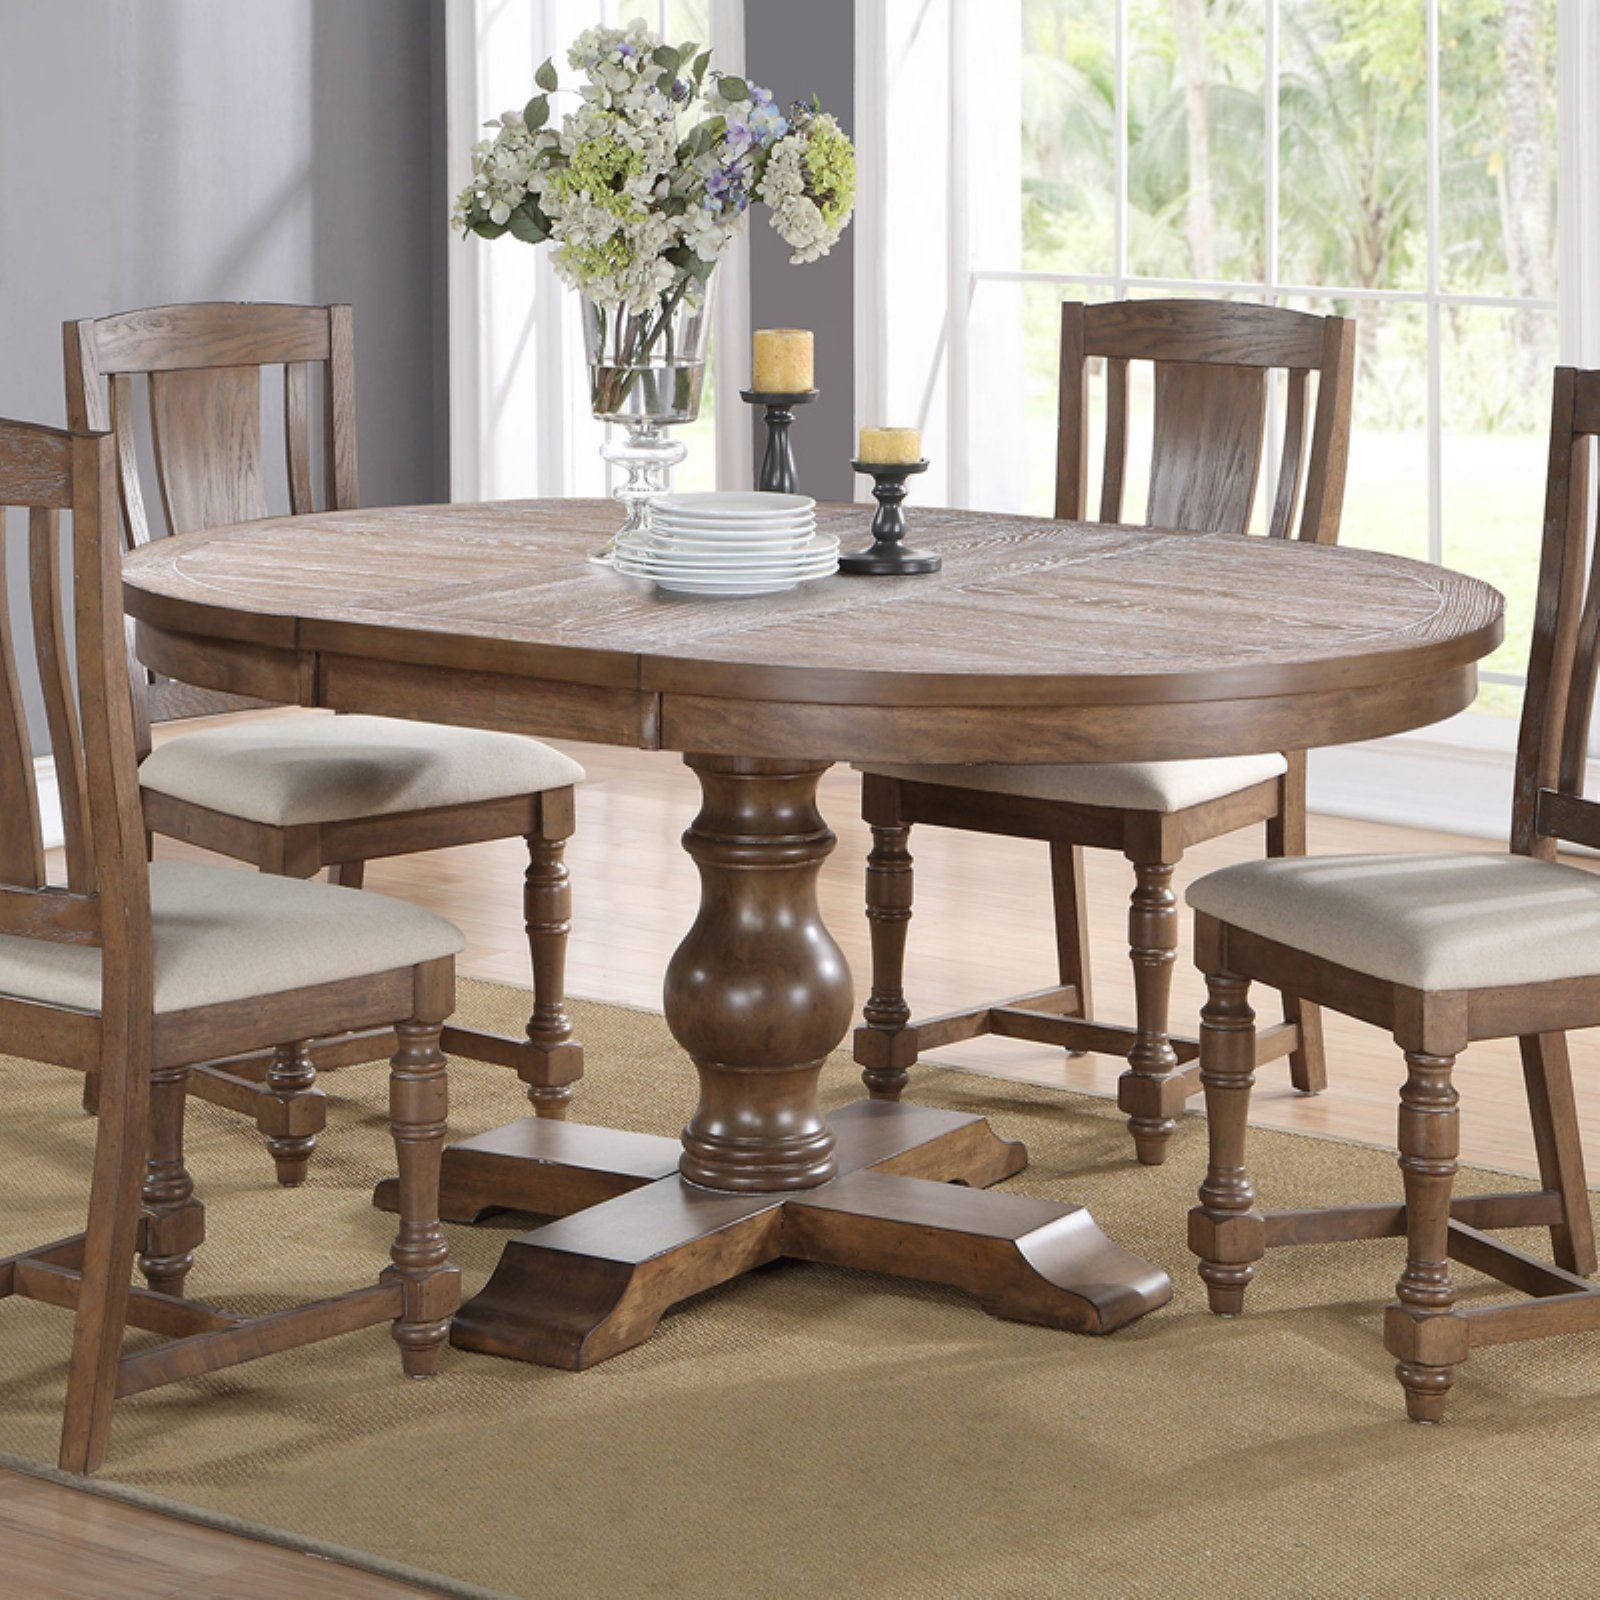 Winners Only Xcalibur Pedestal Dining Table | Products In With Regard To Latest Rustic Brown Lorraine Pedestal Extending Dining Tables (View 17 of 25)